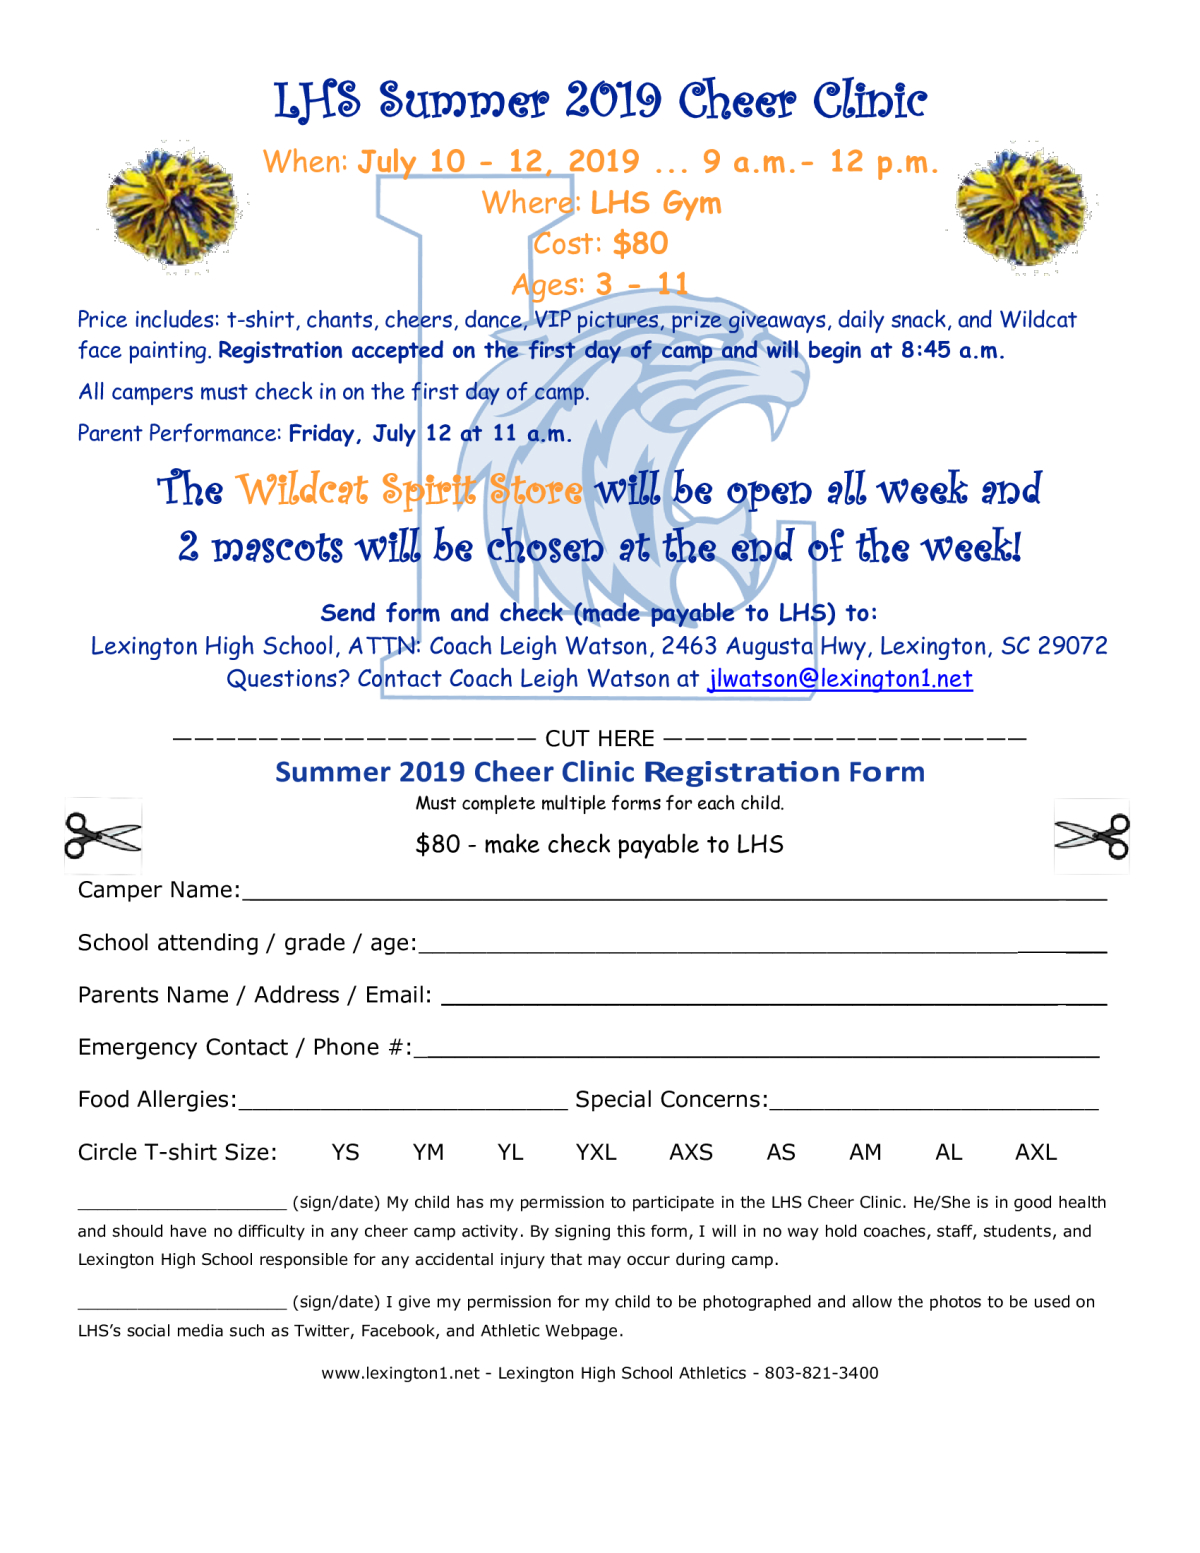 5667325b364 Image of a flyer titled LHS Summer 2019 Cheer Clinic